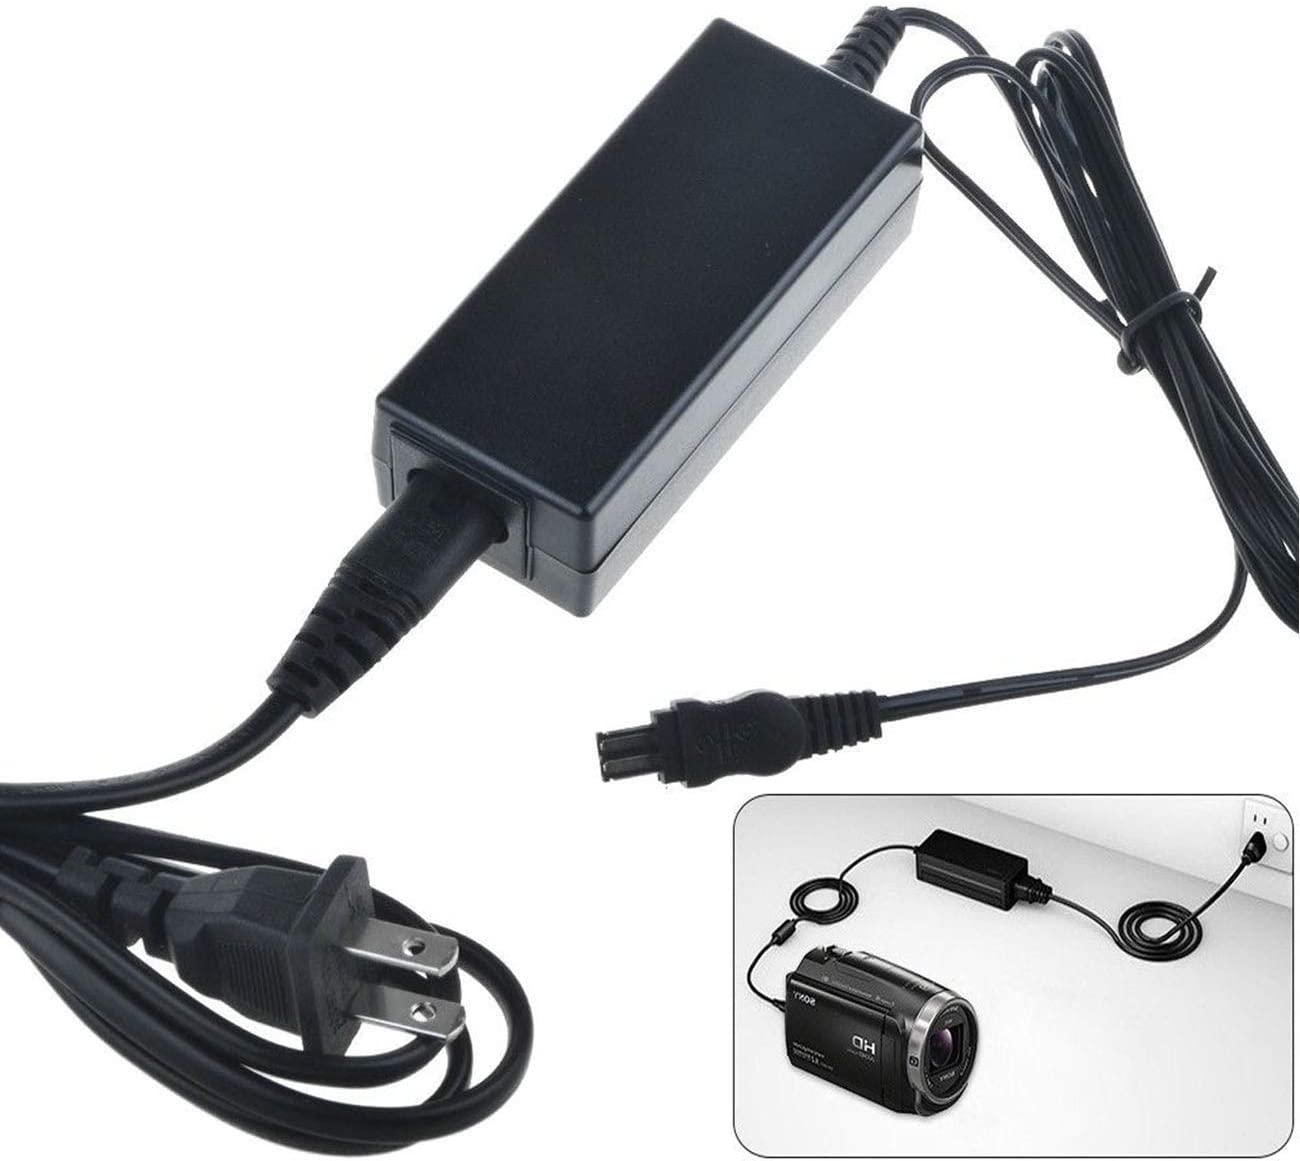 DCR-TRV125 DCR-TRV145 DCR-TRV147 Handycam Camcorder DCR-TRV118 AC Power Adapter Charger for Sony DCR-TRV116